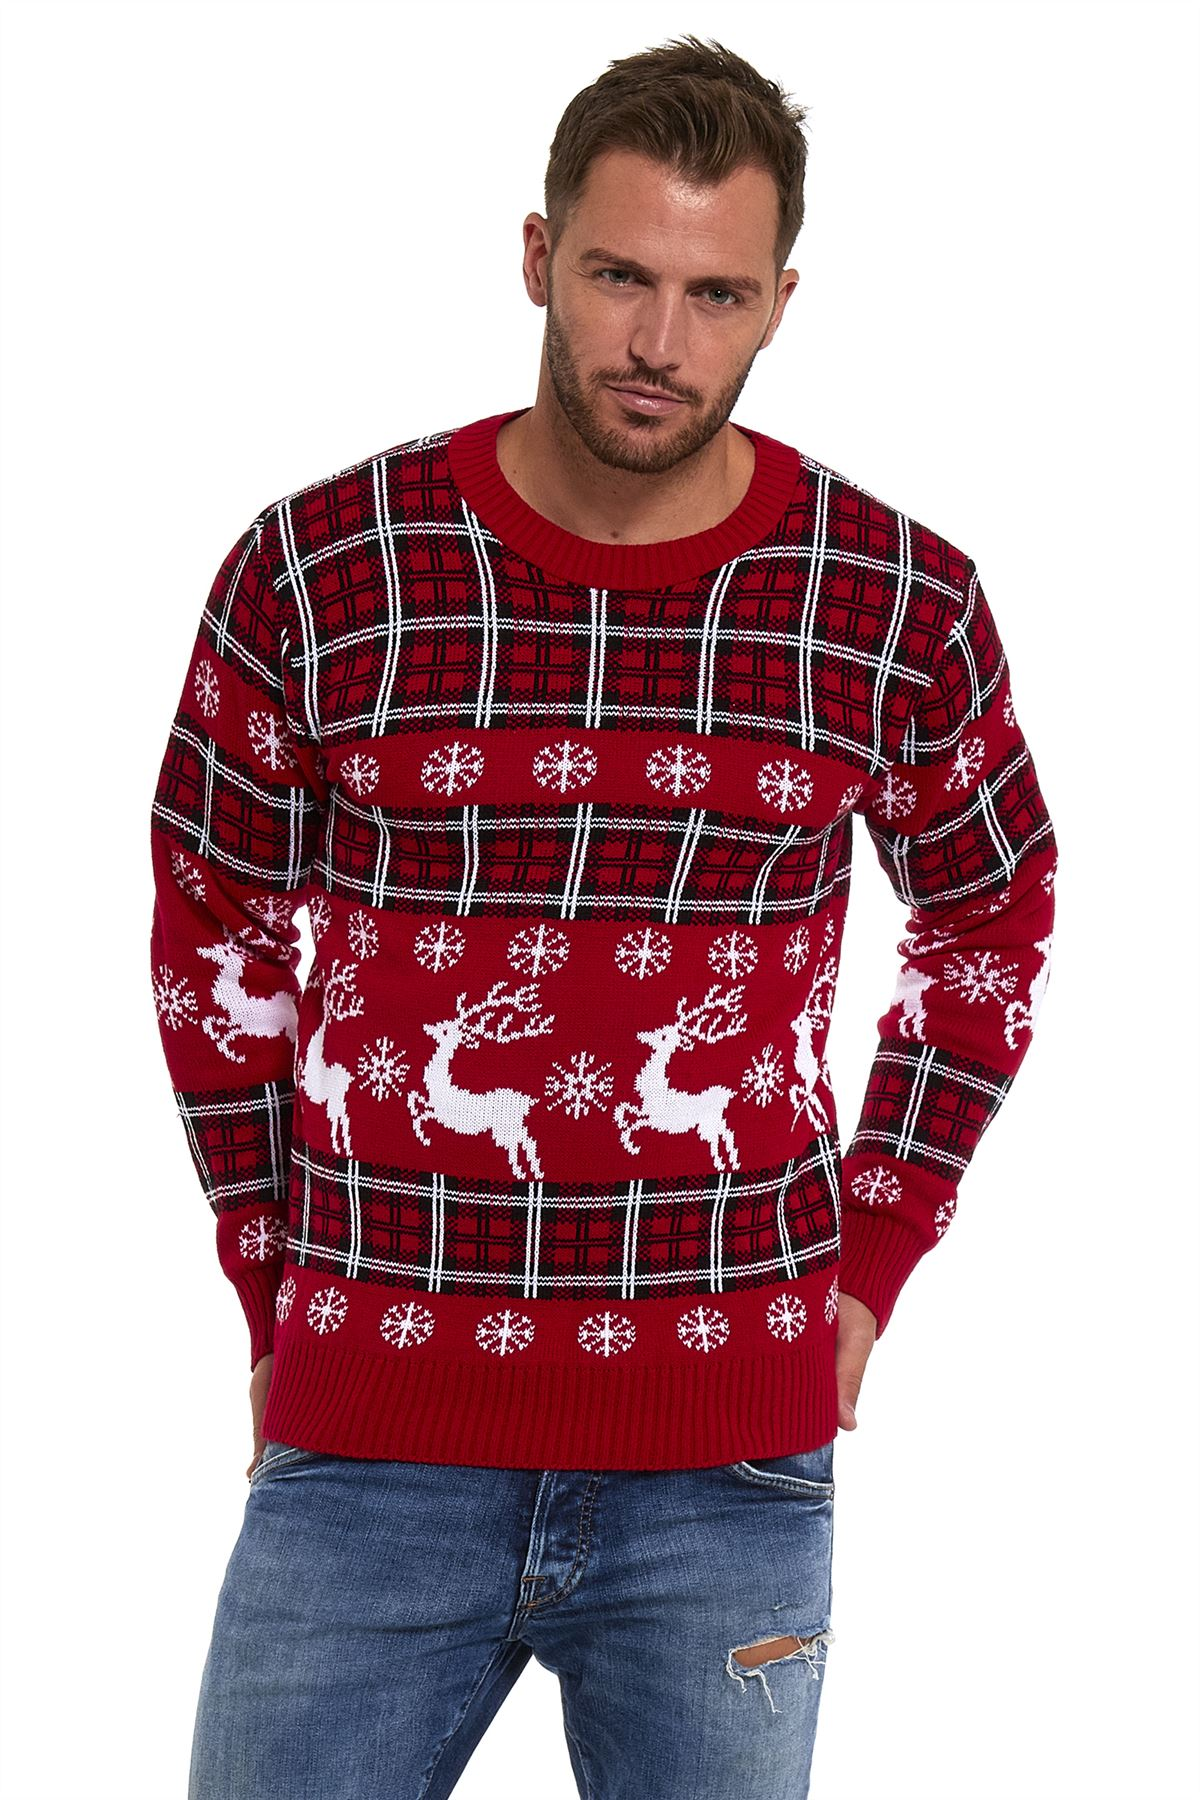 Mens-Xmas-Jumpers-Christmas-Sweater-Pullover-Novelty-Classic-Retro-Vintage-2017